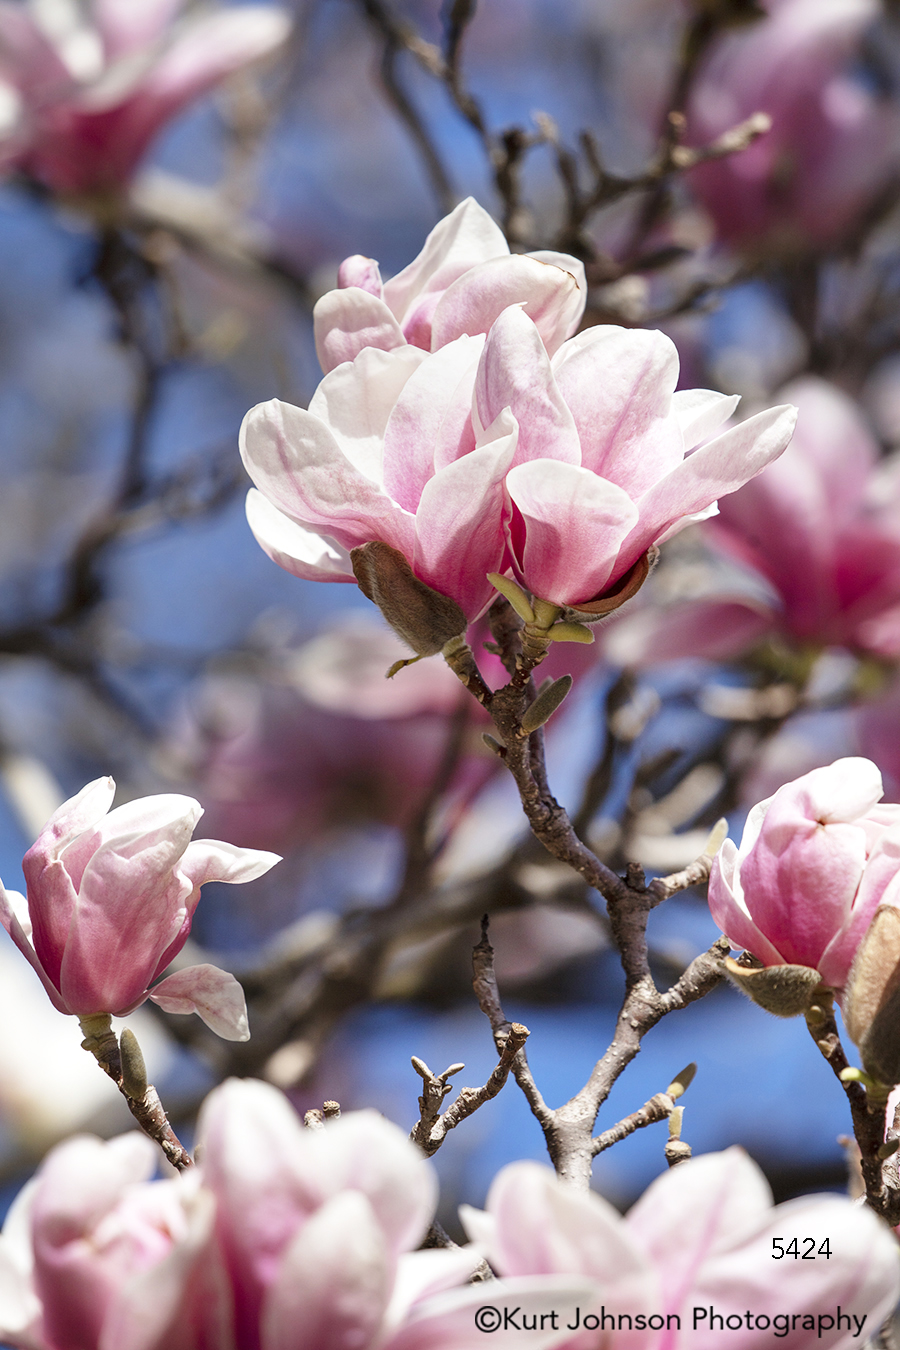 pink cherry blossom spring blossoms branches bloom tree branch branches close up macro detail flower flowers